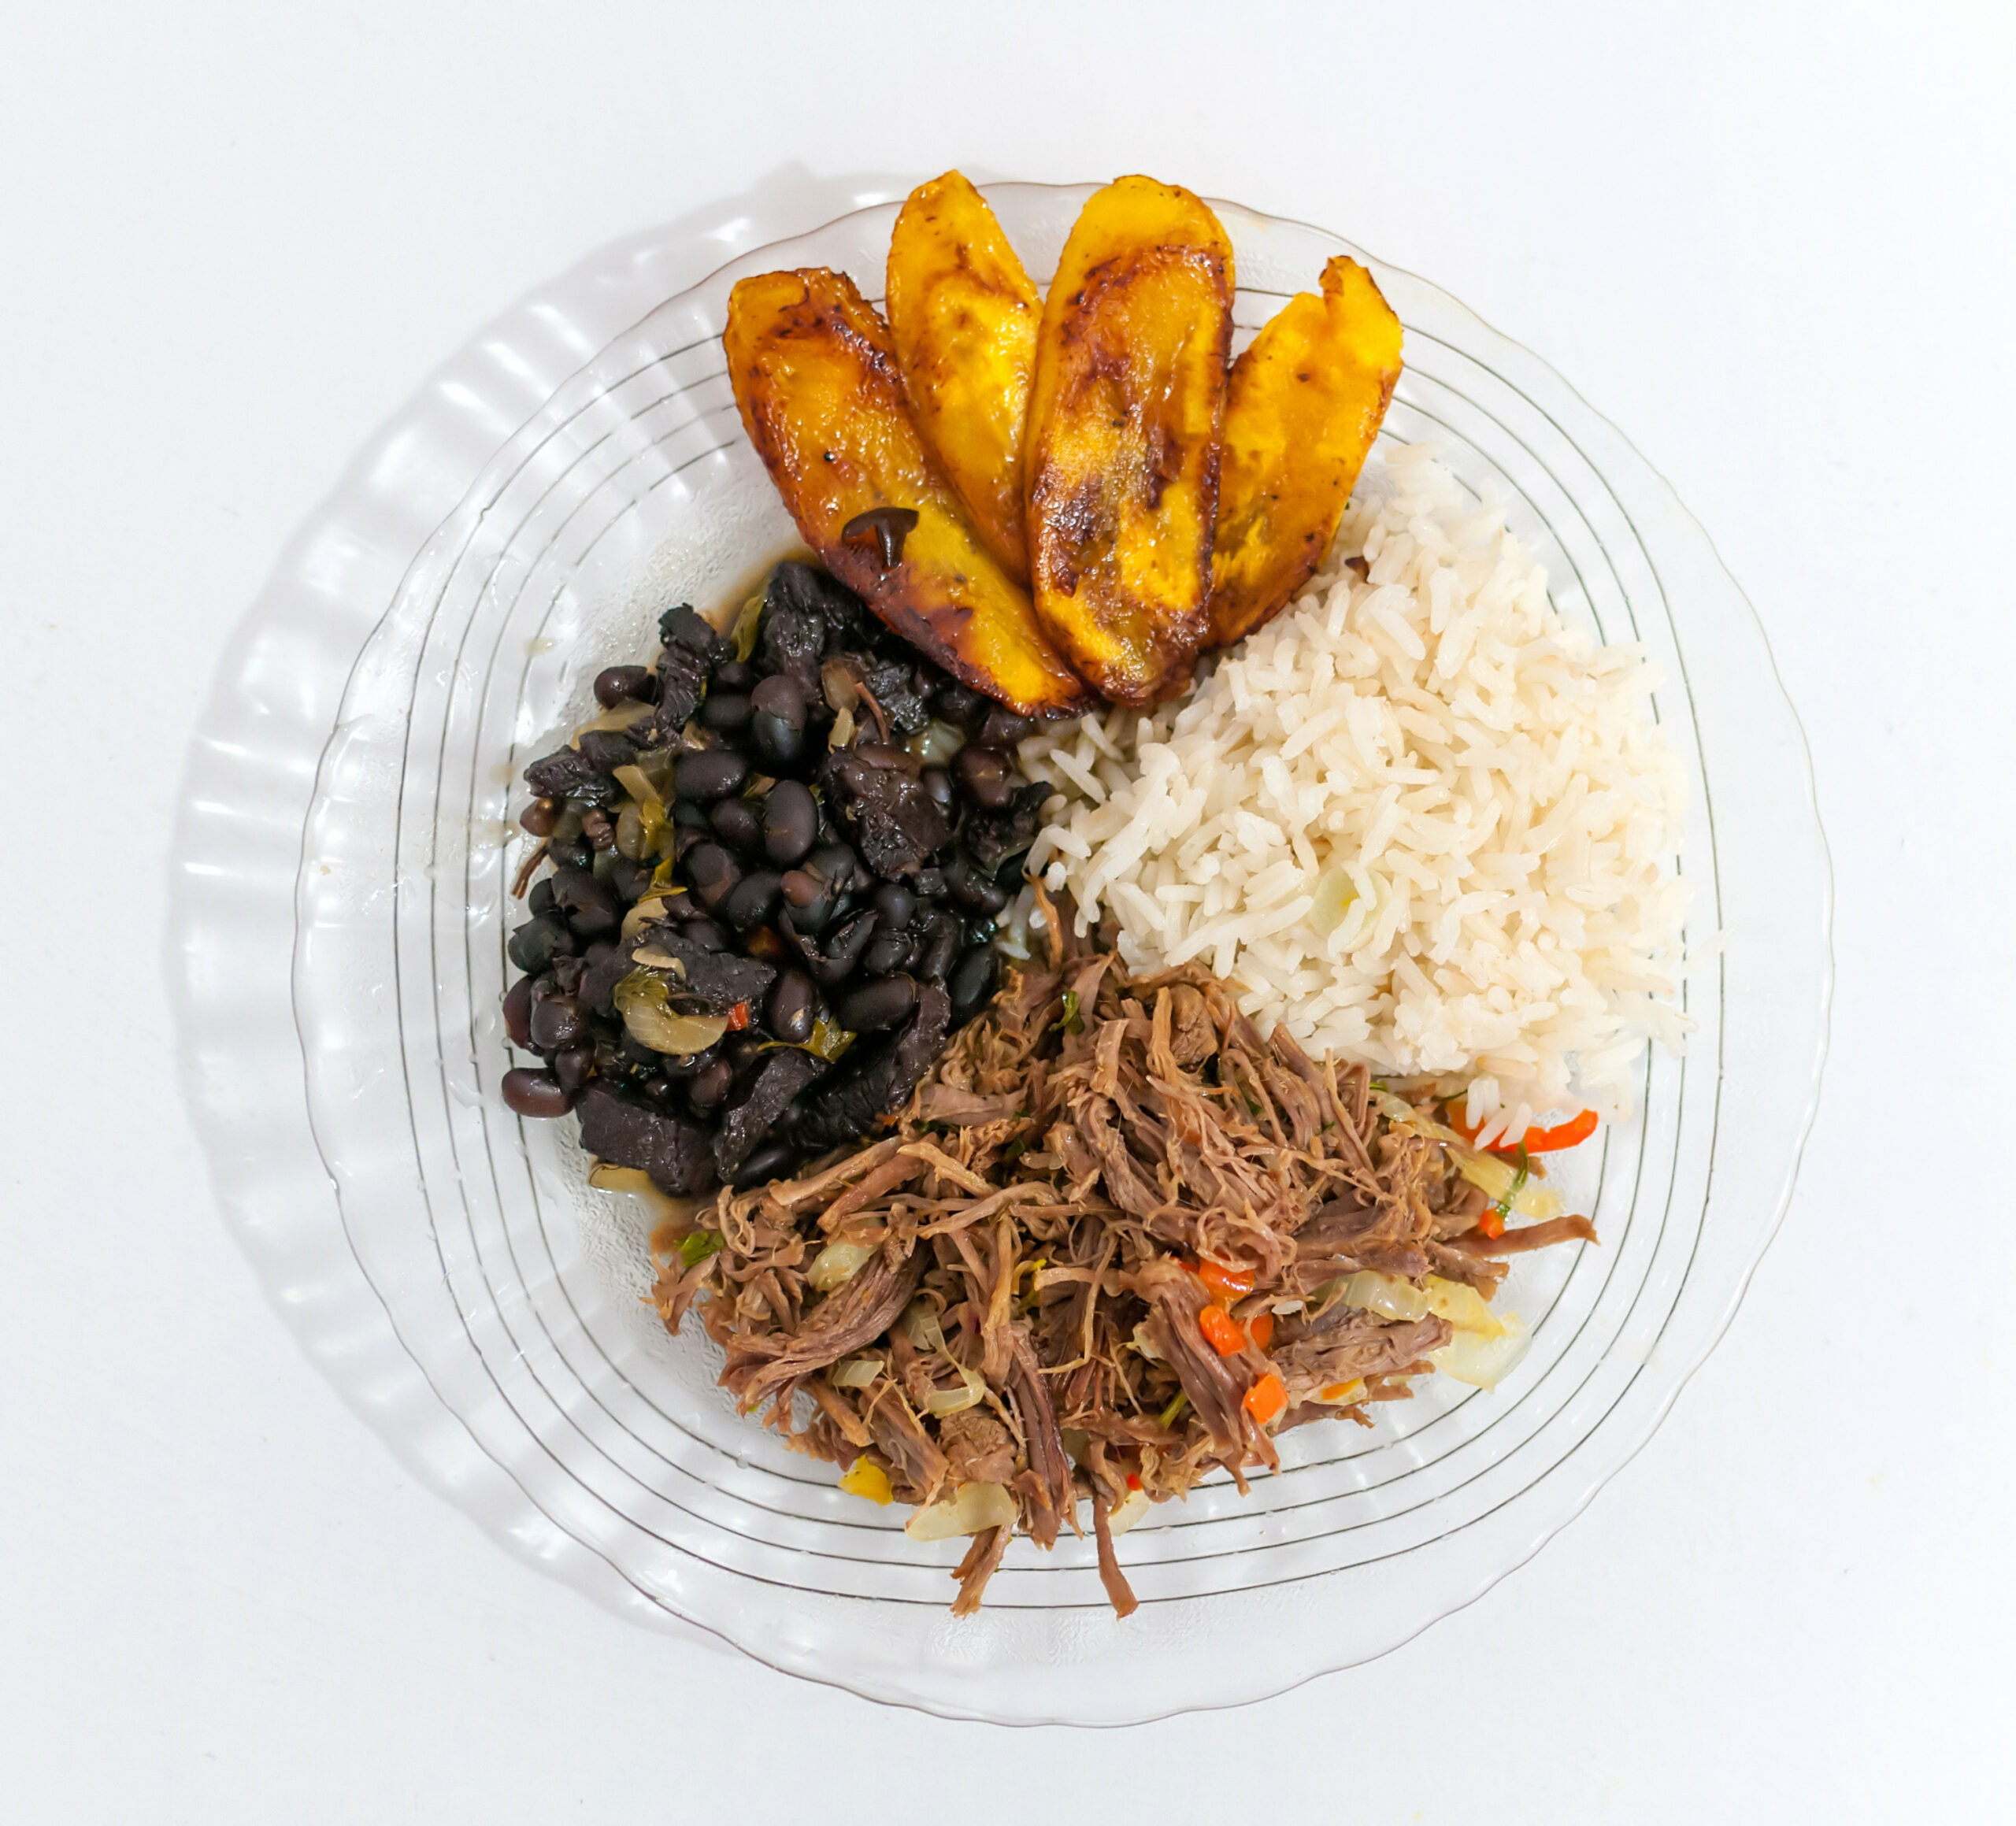 Pabellón criollo - Wikipedia - recipes venezuelan food